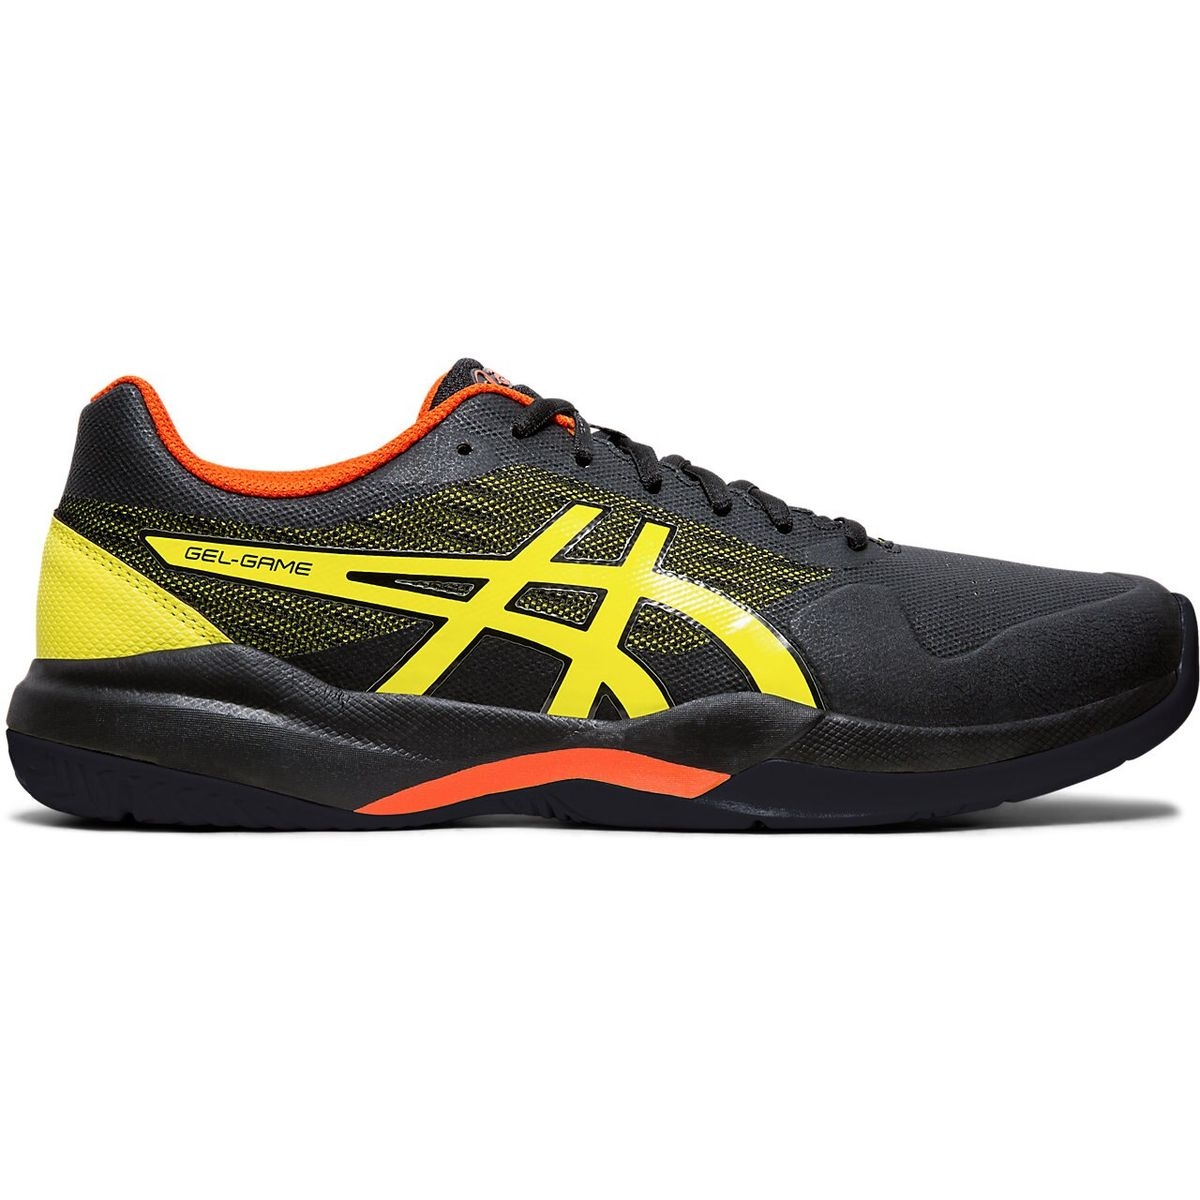 ASICS-Gel-Game-7-Preto